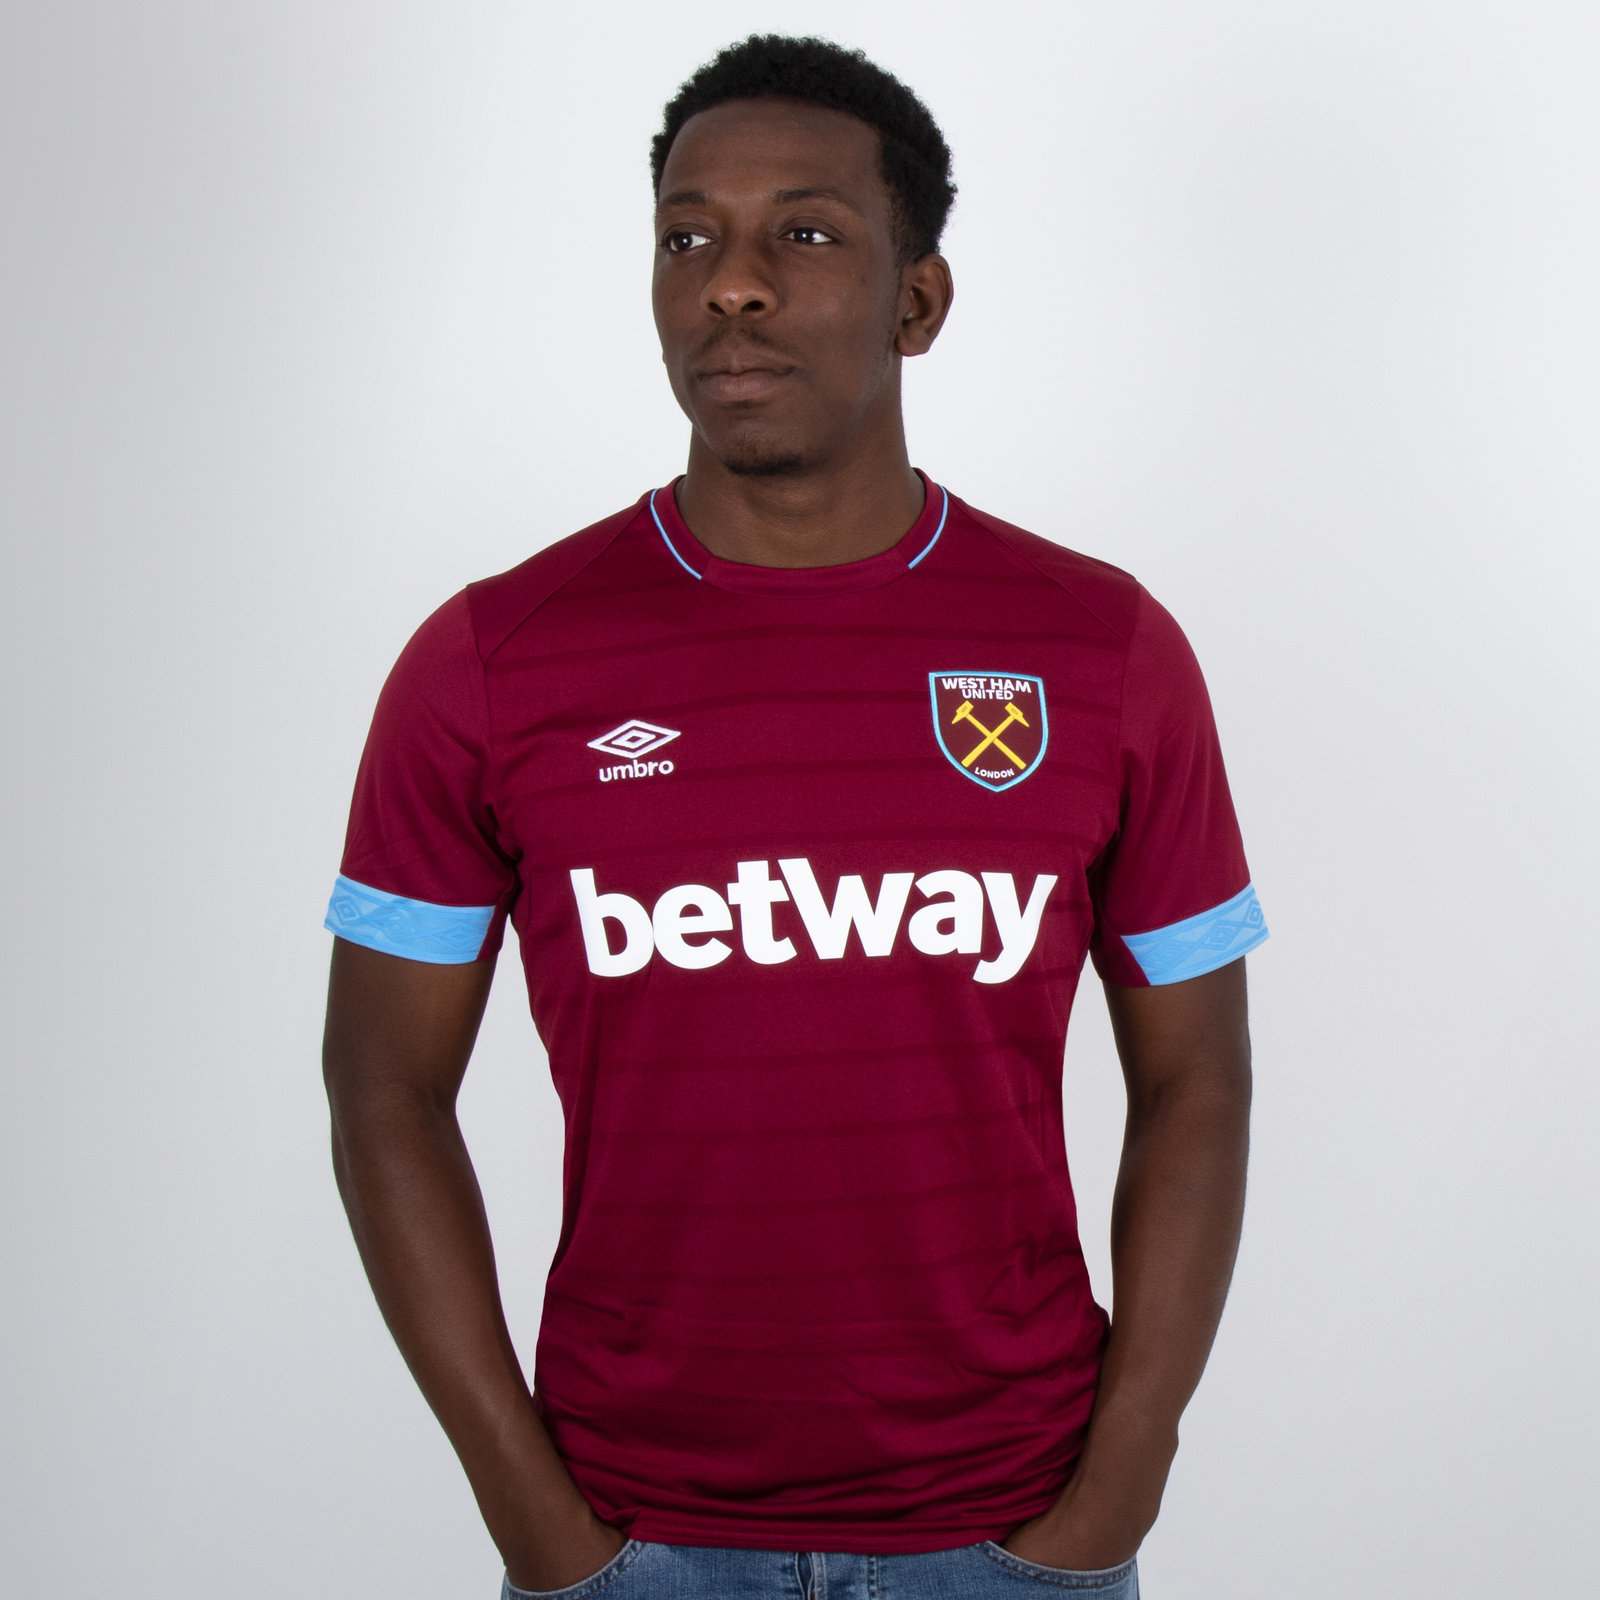 West Ham United Home shirt